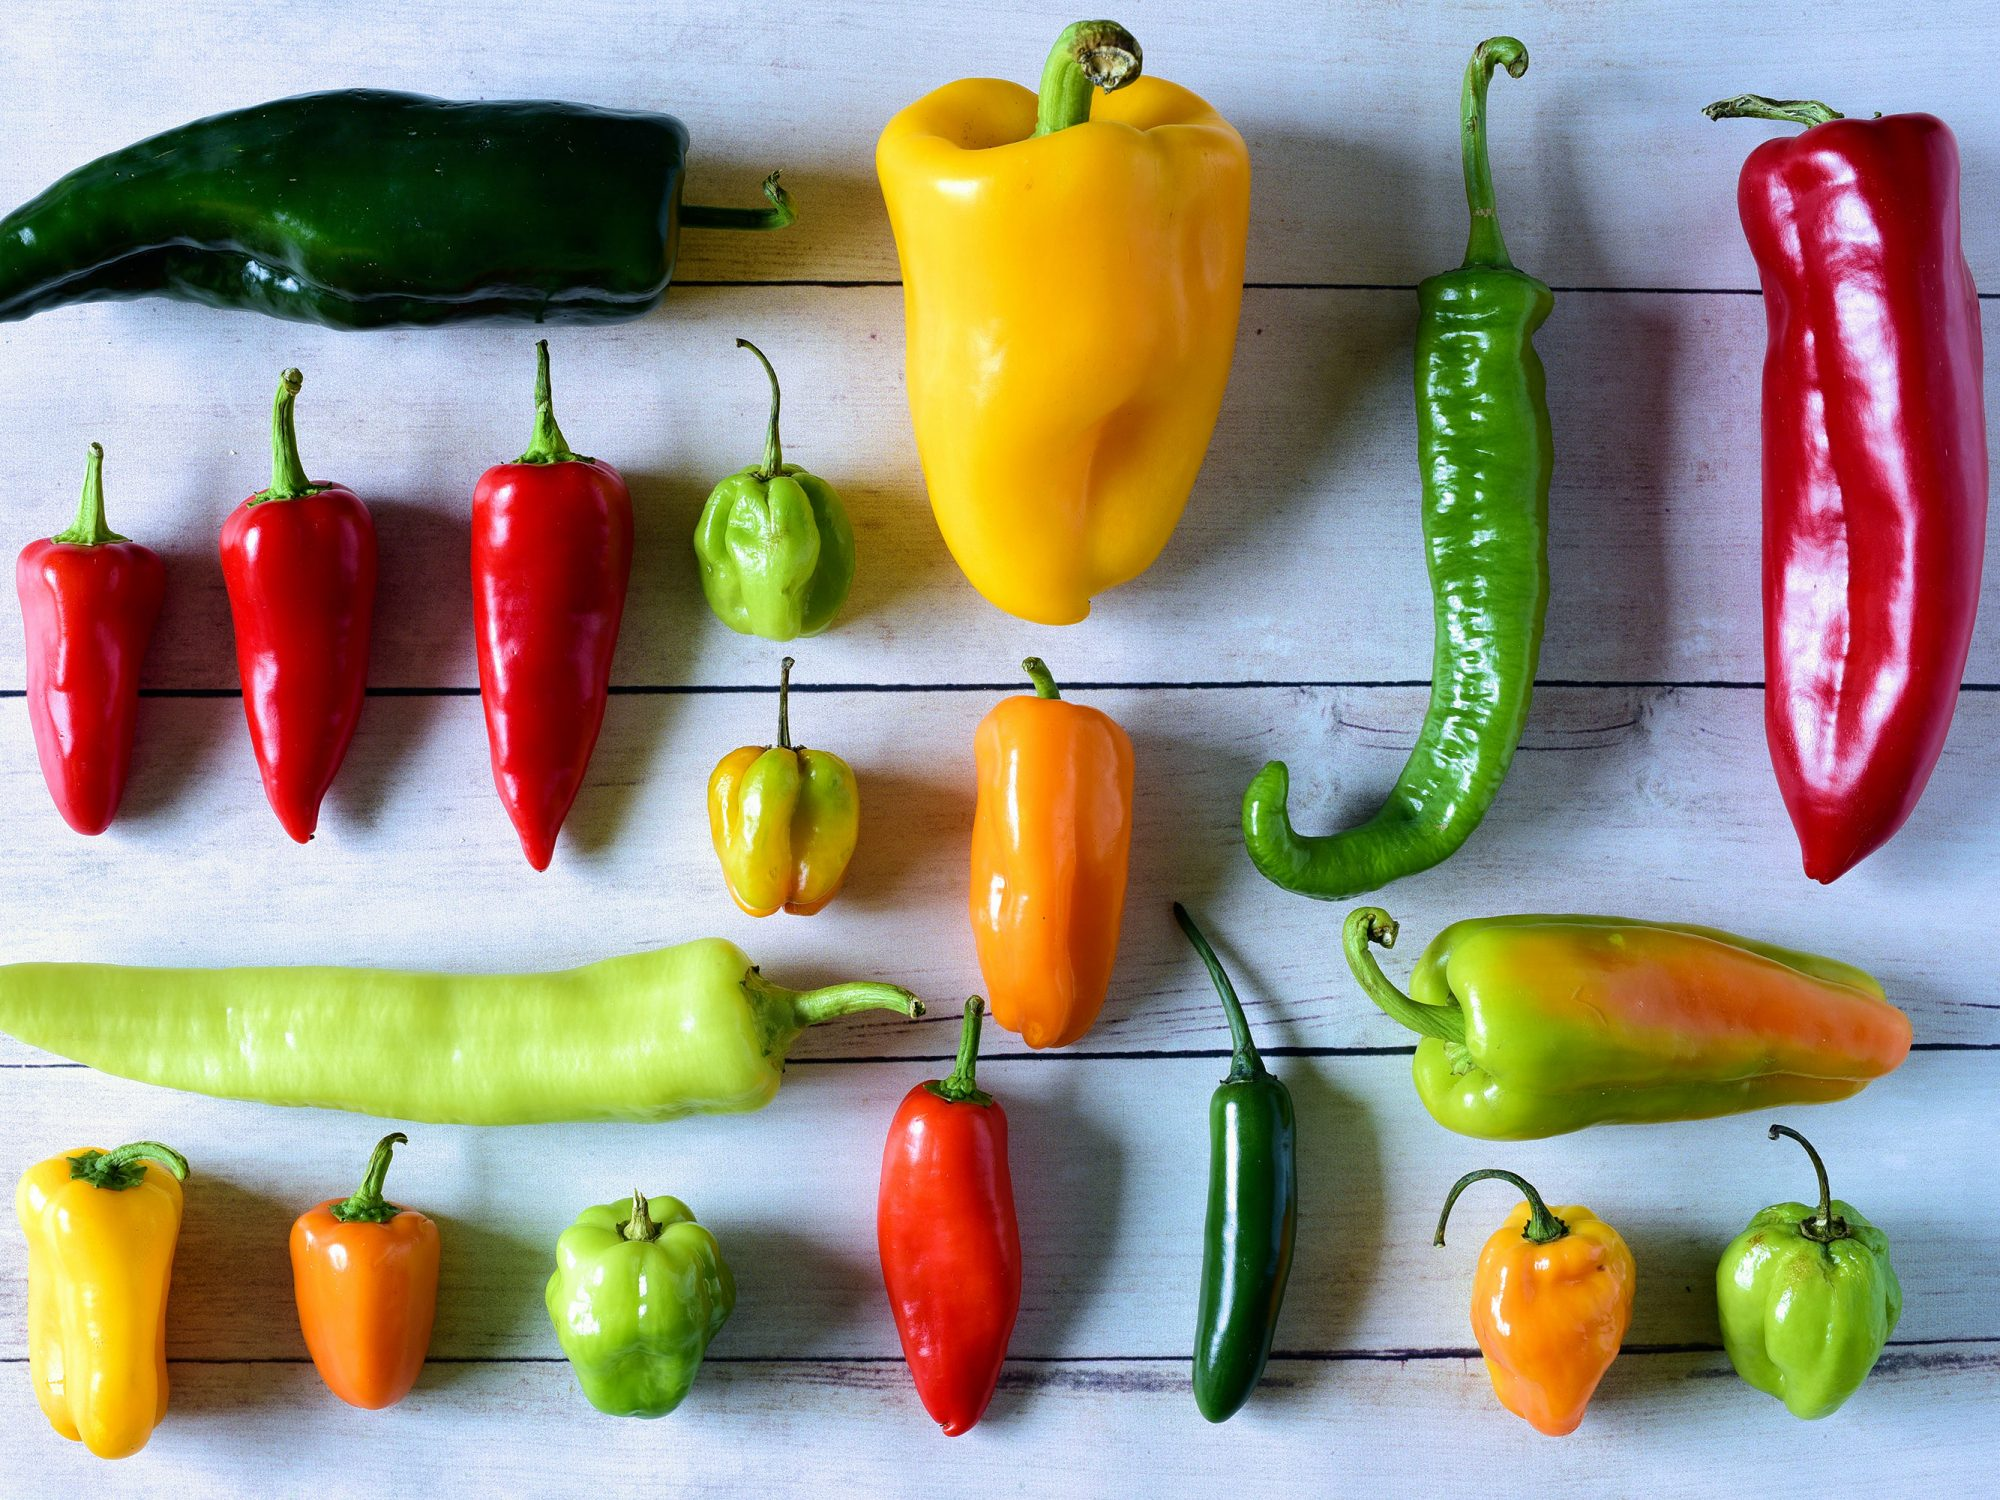 10 Foods that can make you smarter: Hot pepper